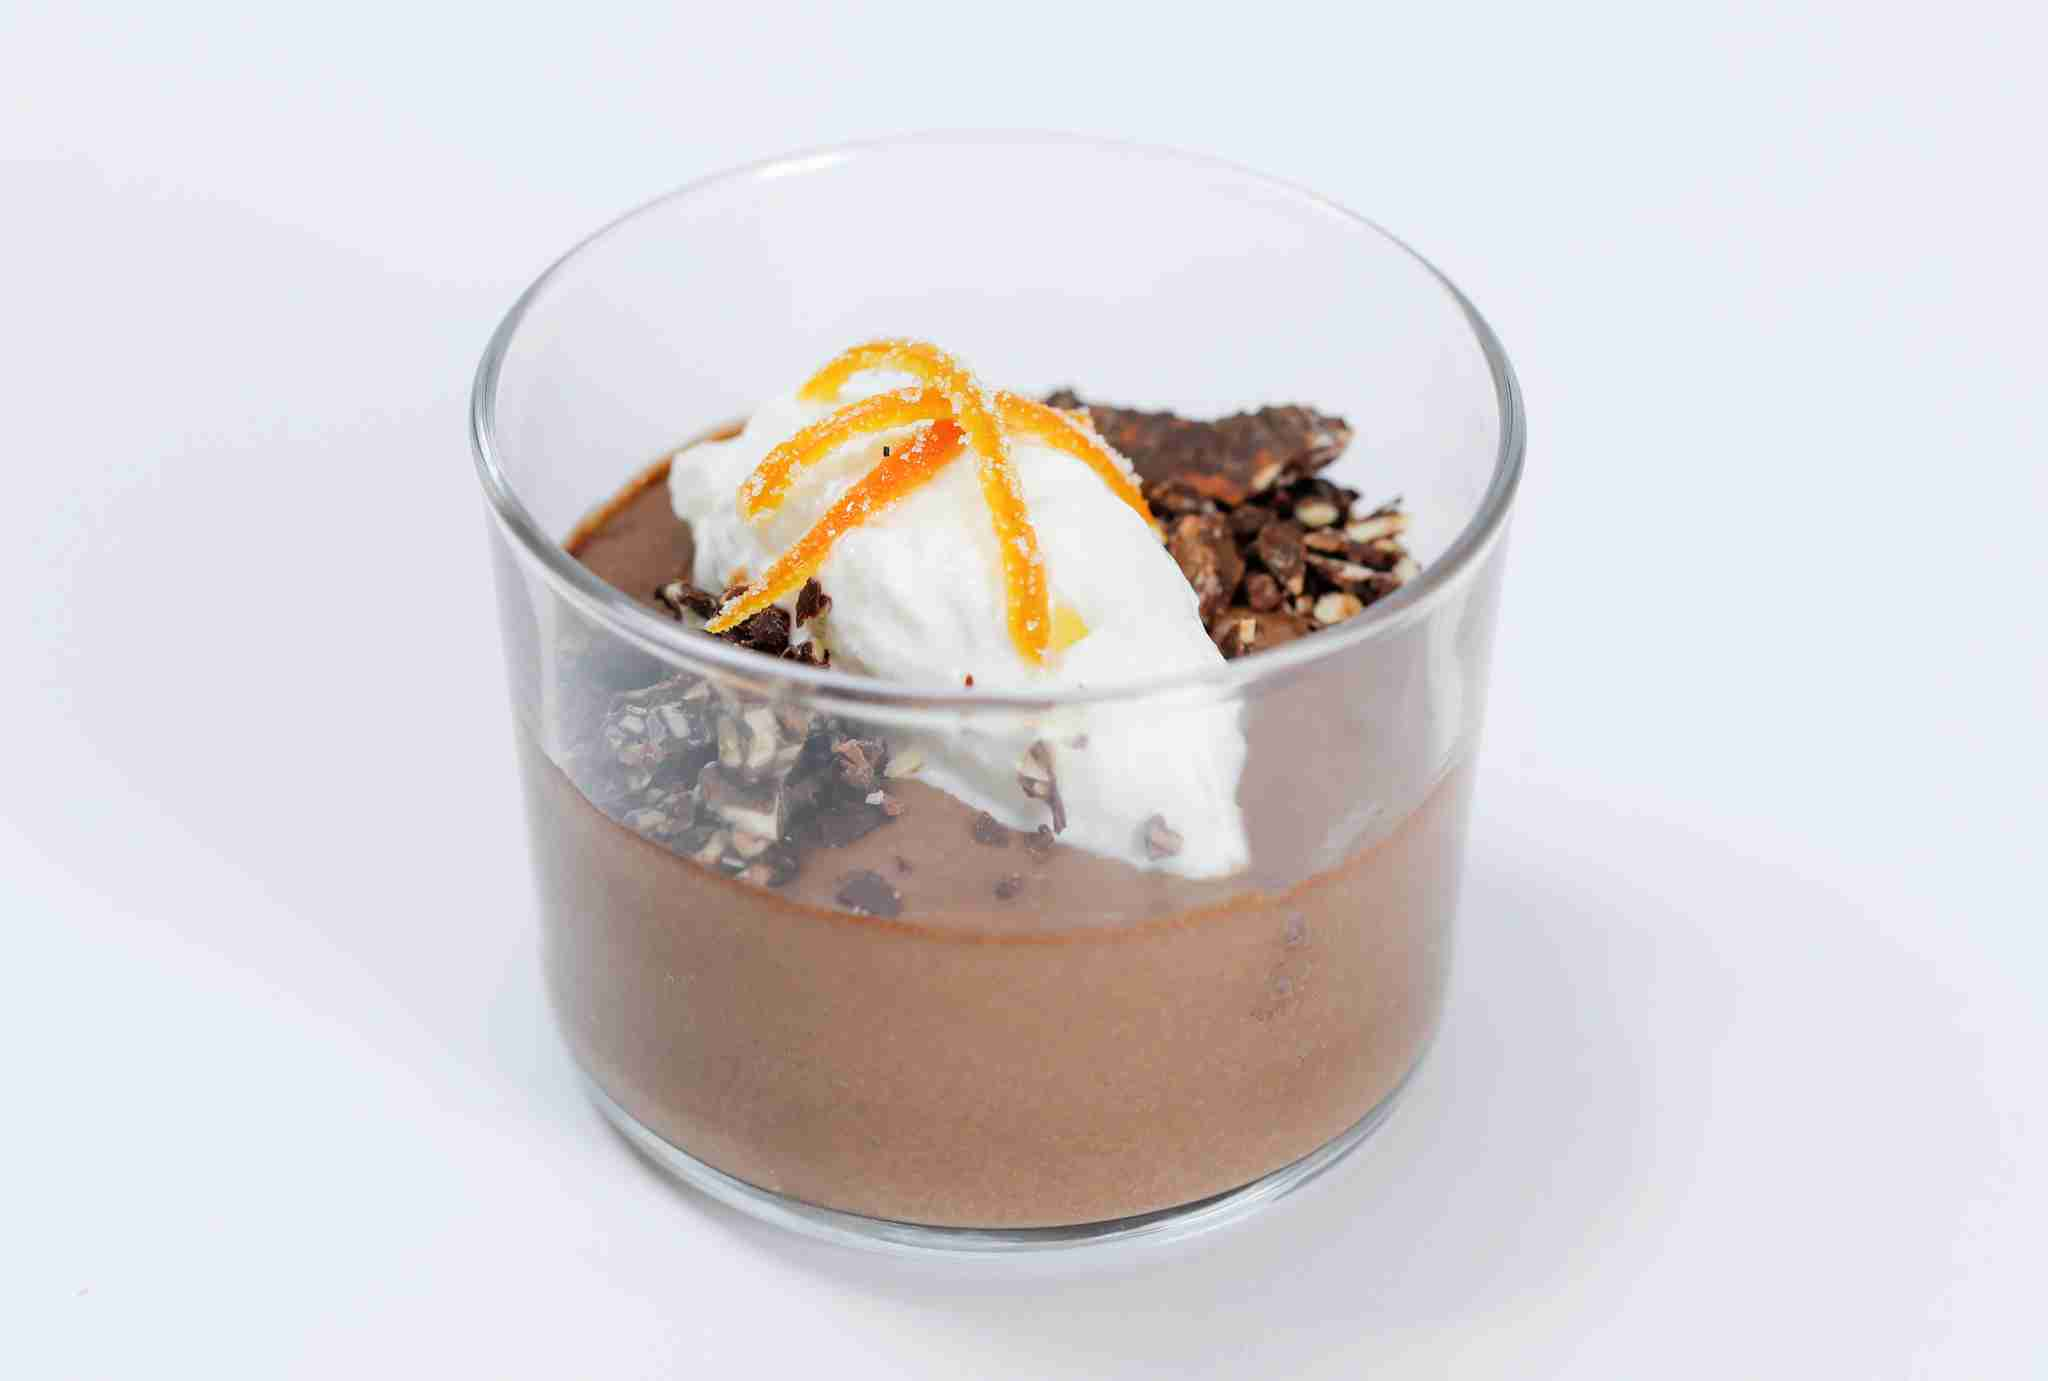 Chocolate budino. (Photo courtesy of American Airlines.)